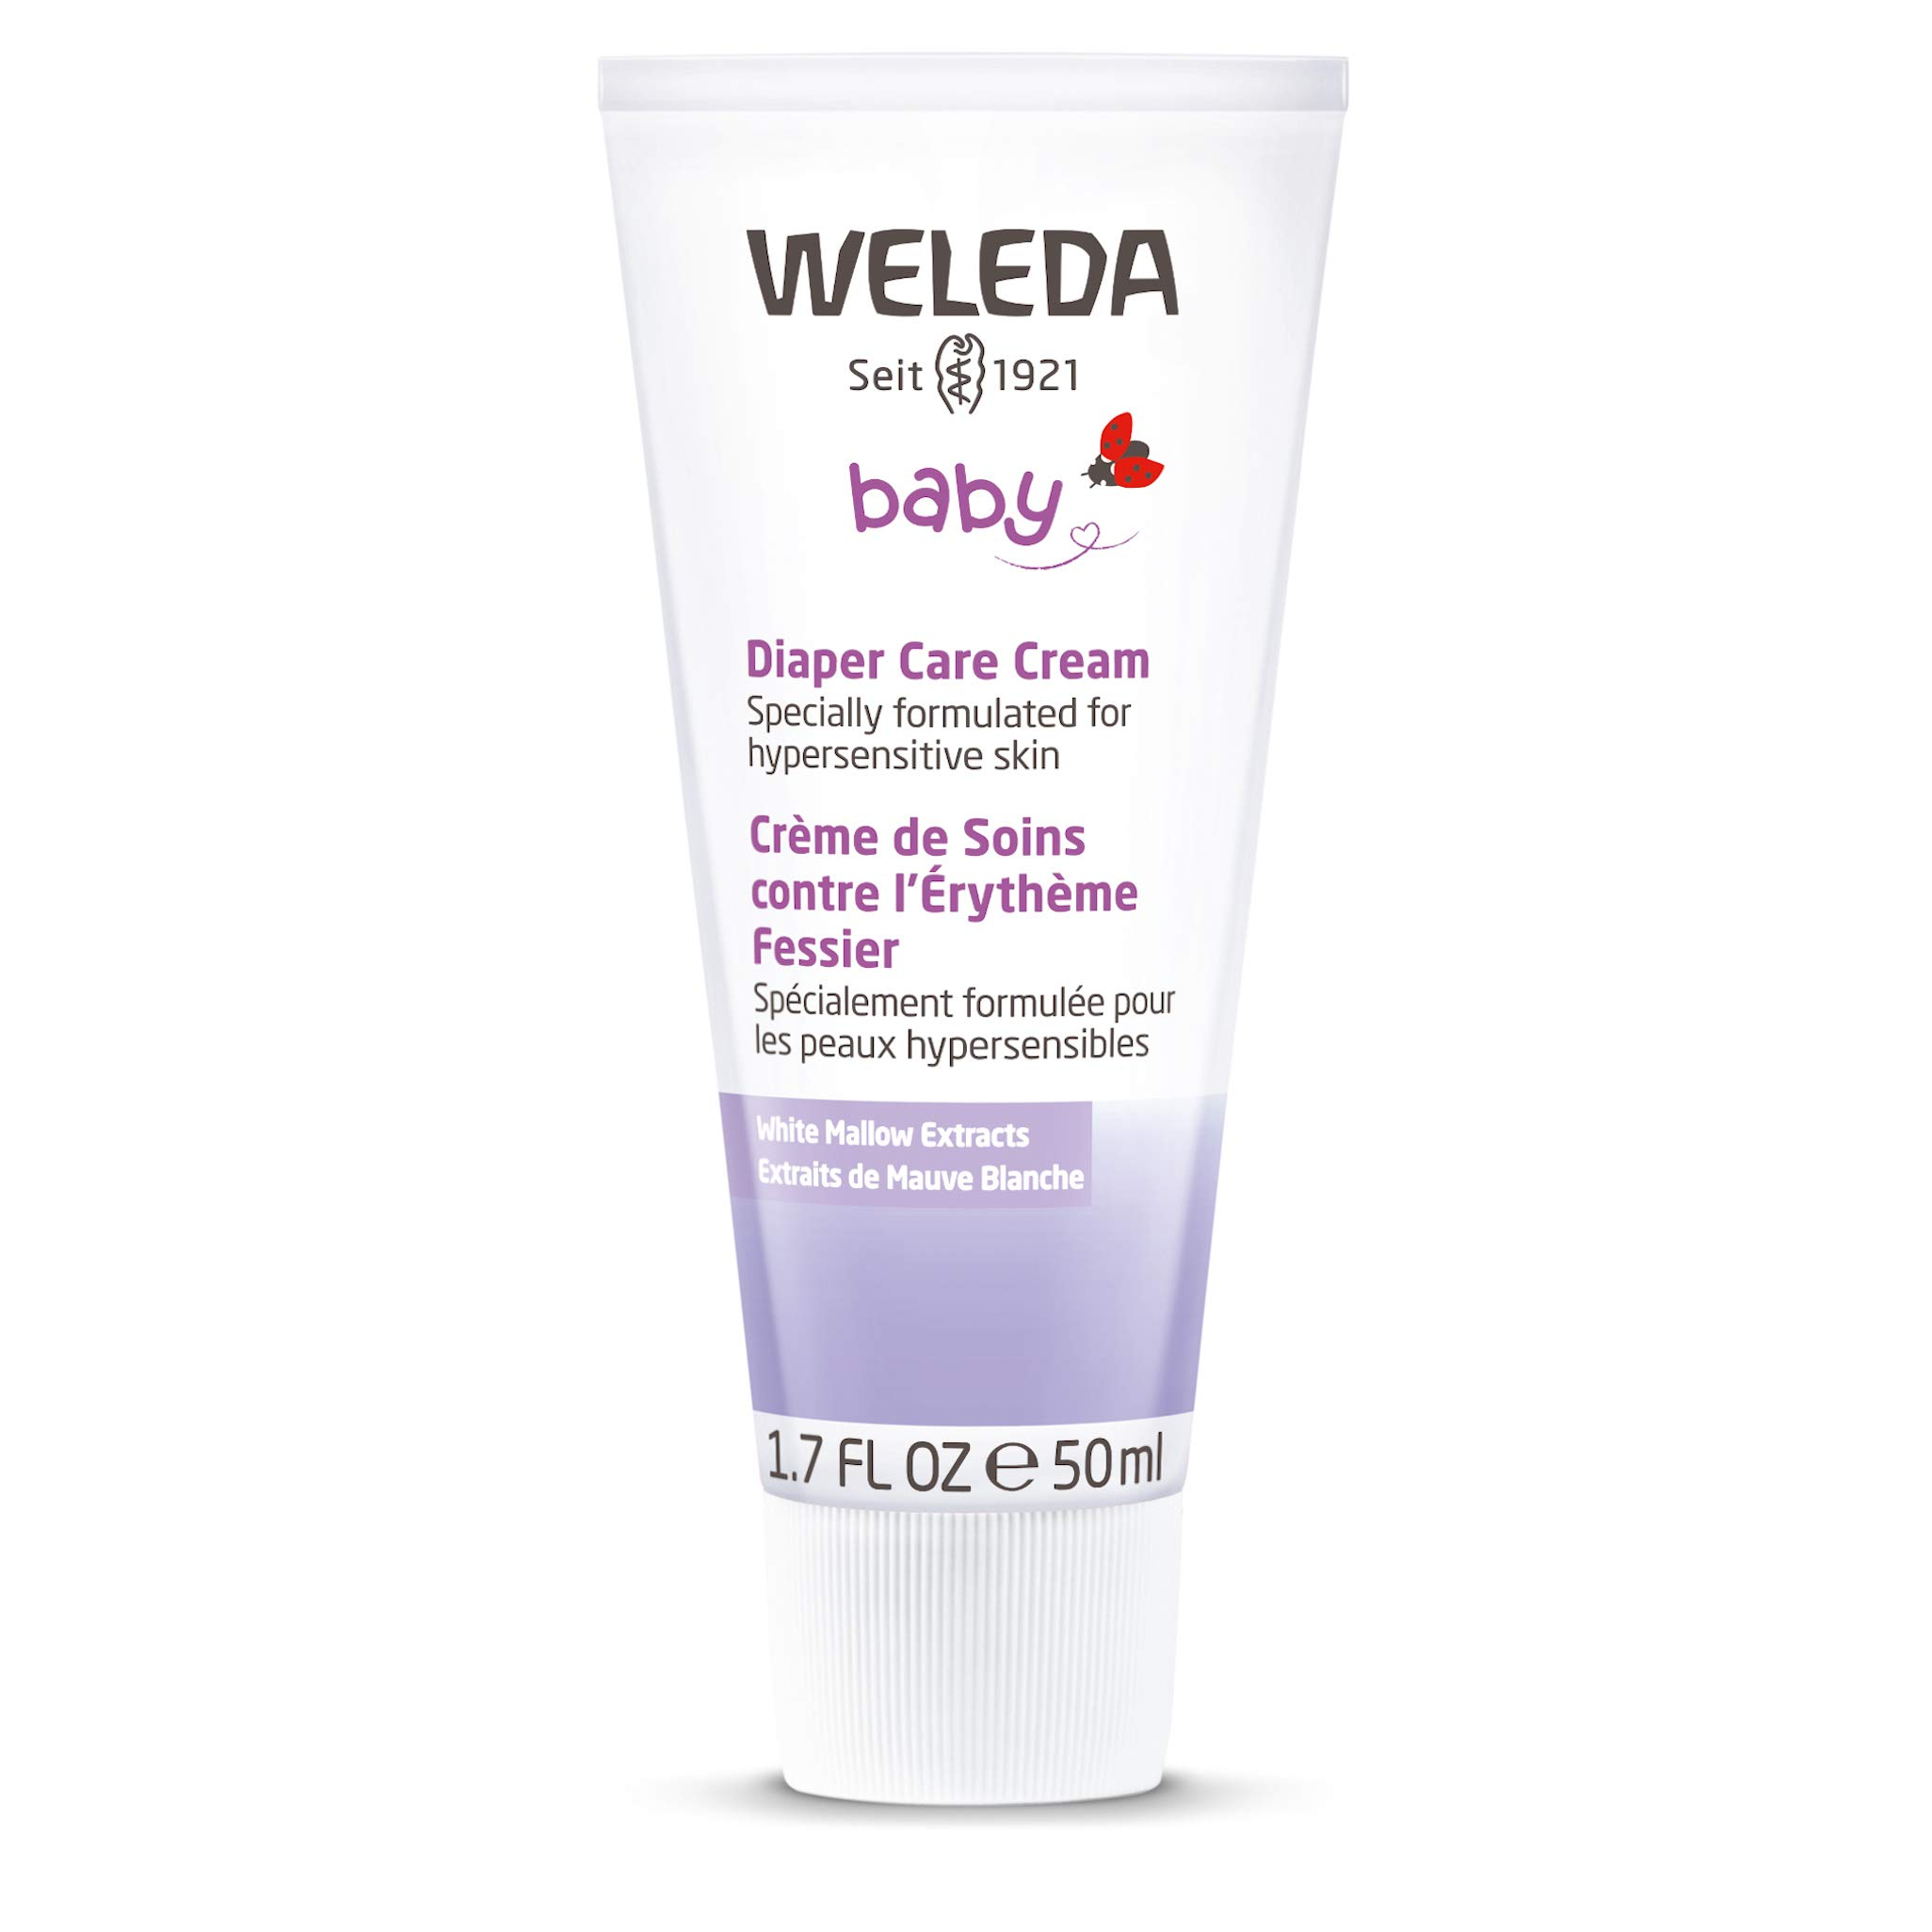 Weleda Diaper Care Cream, 1.7 Ounce by Weleda